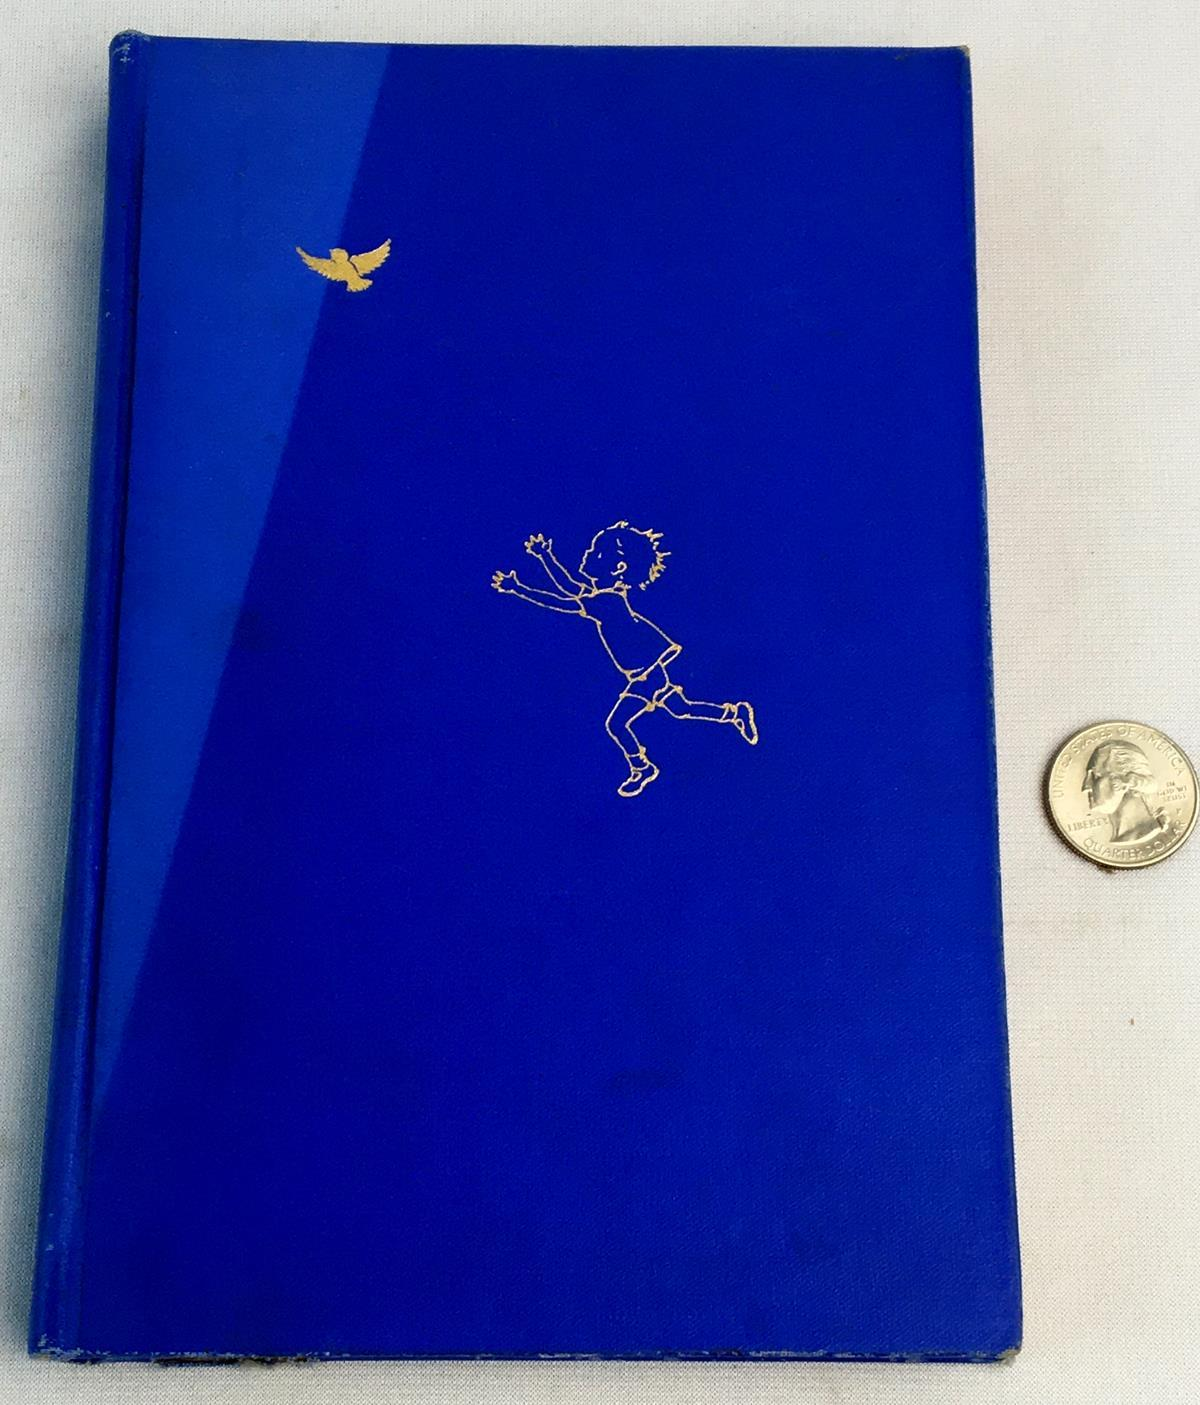 1927 Balloon Moon by Elise Pumpelly Cabot Illustrated FIRST EDITION